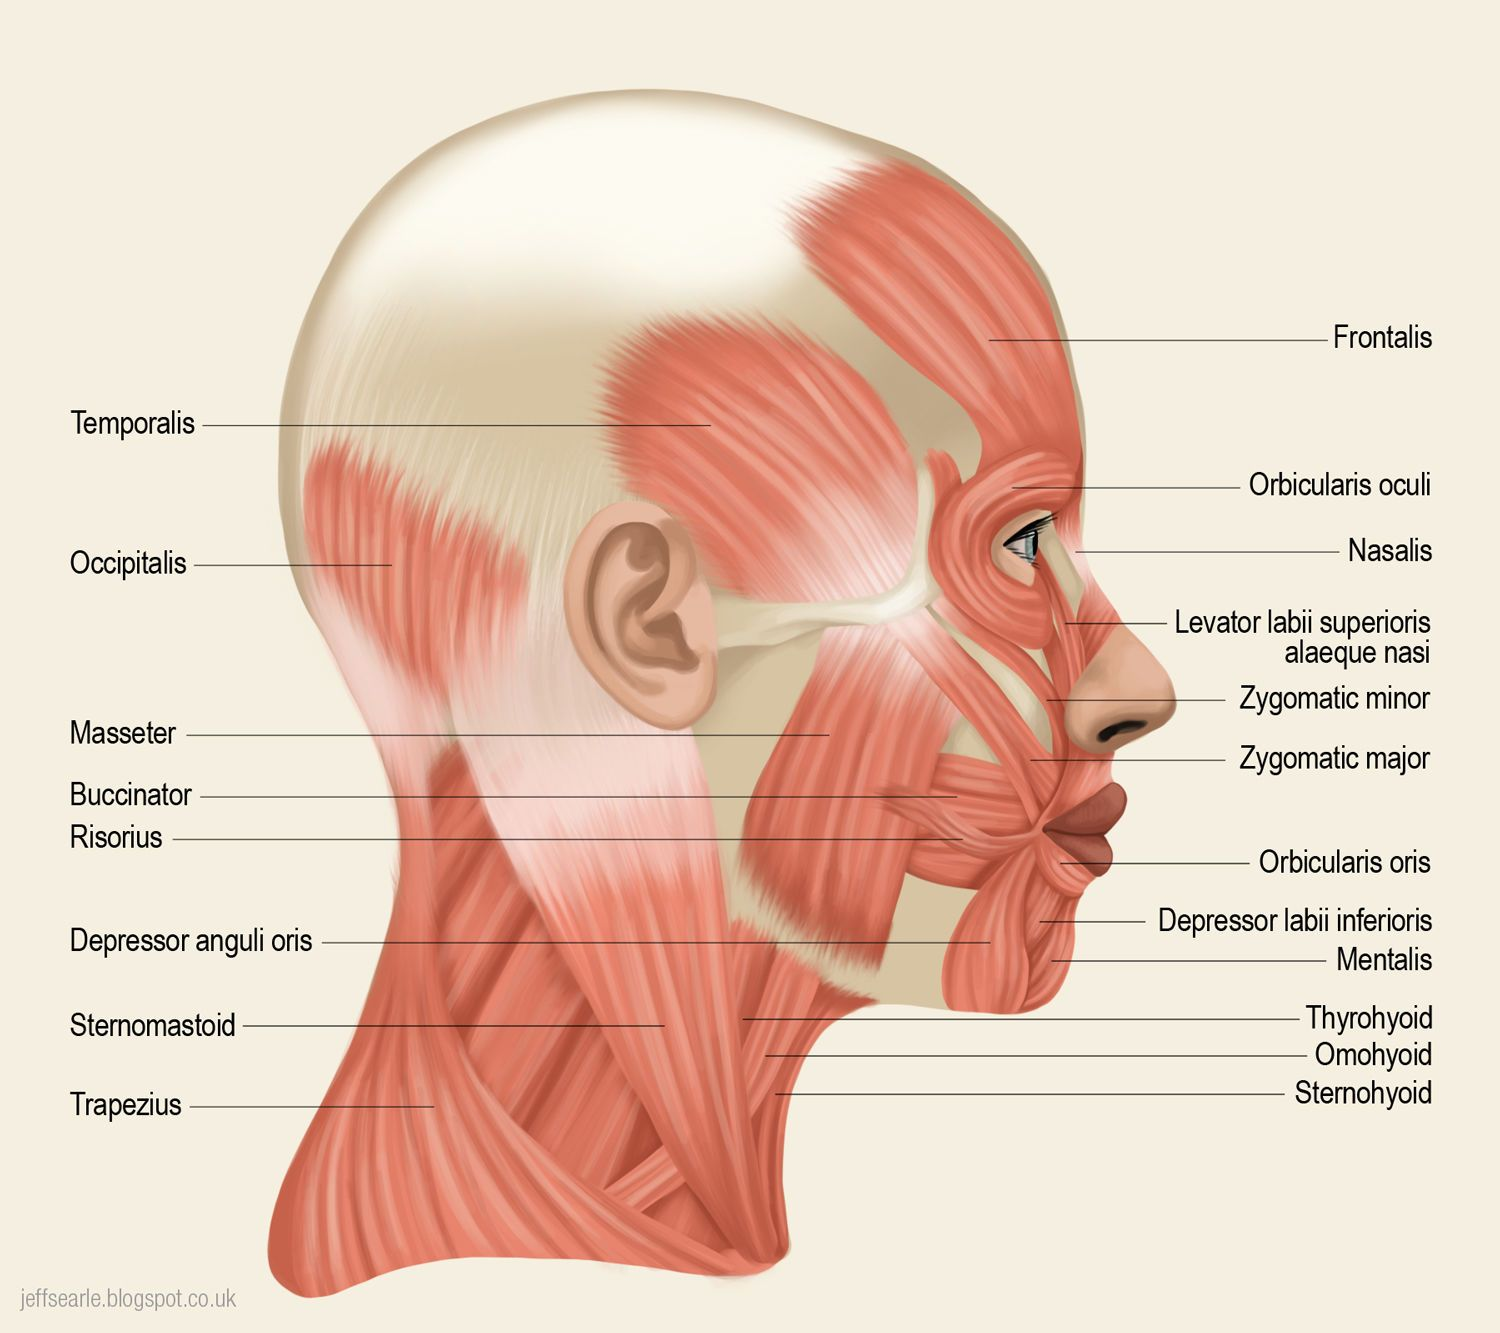 under chin muscle diagram muscle diagram of head label the diagram muscle of the head and  muscle diagram of head label the